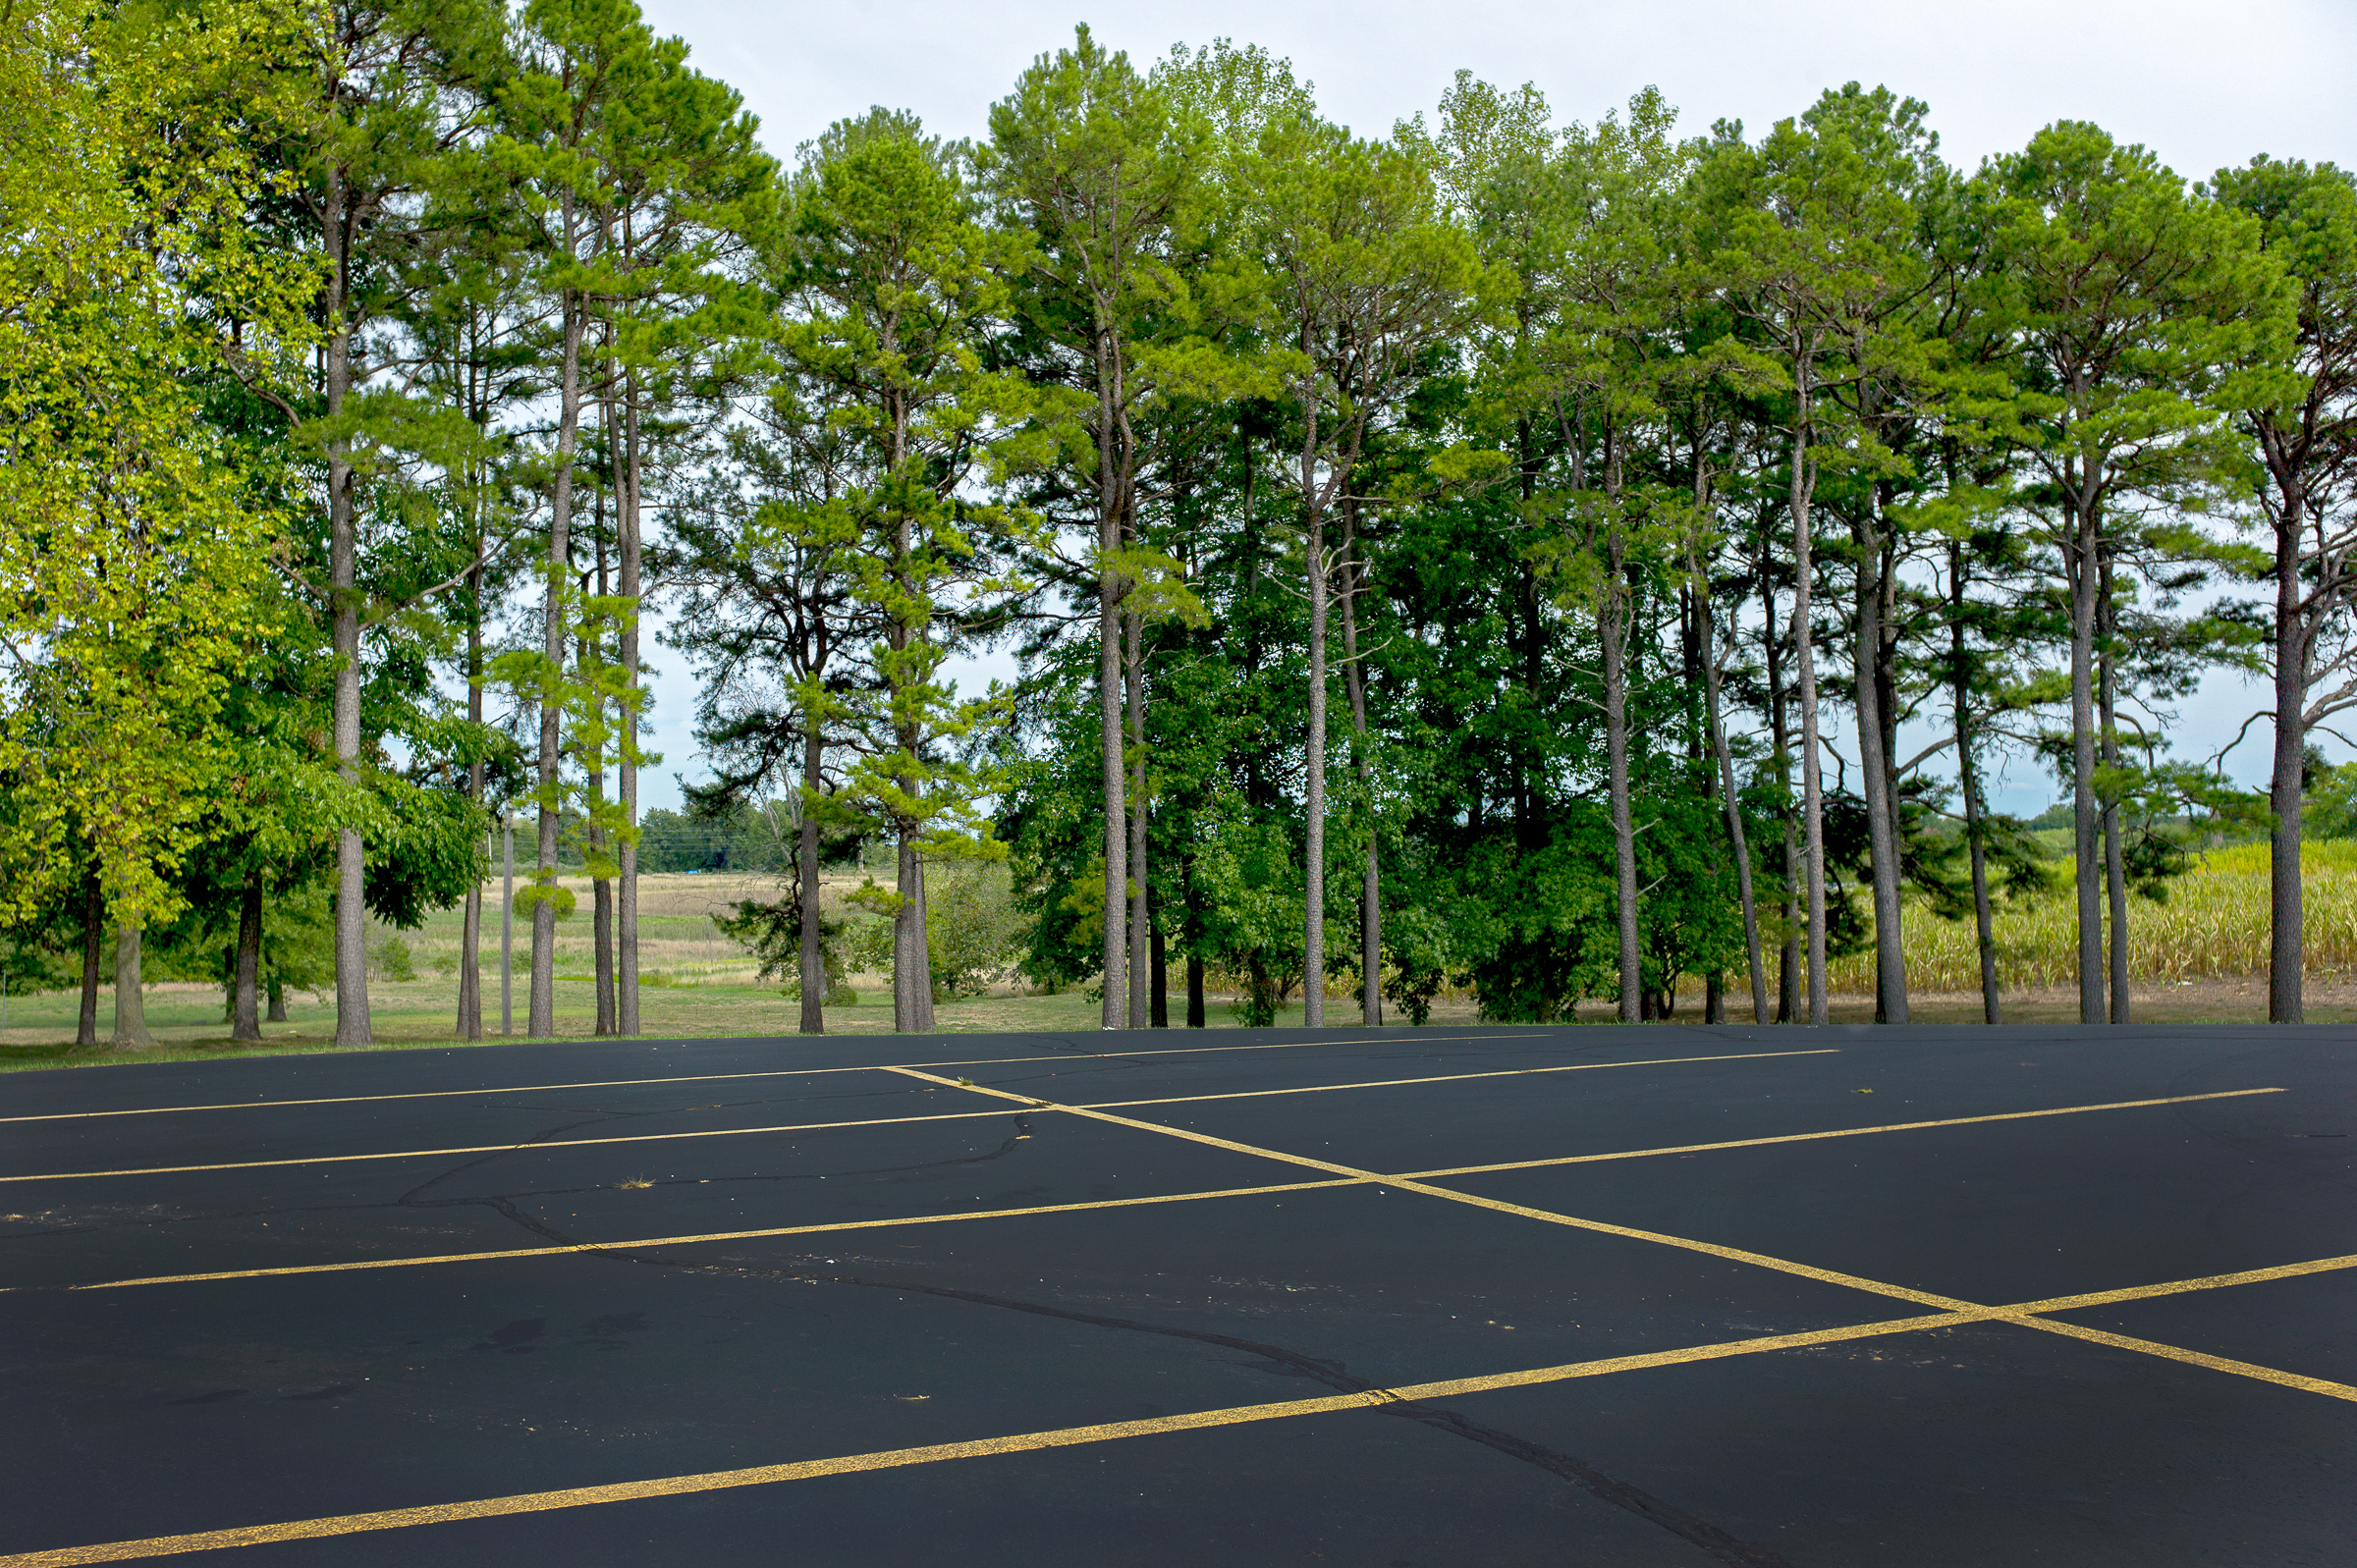 Conifer Trees and Parking Lot.jpg